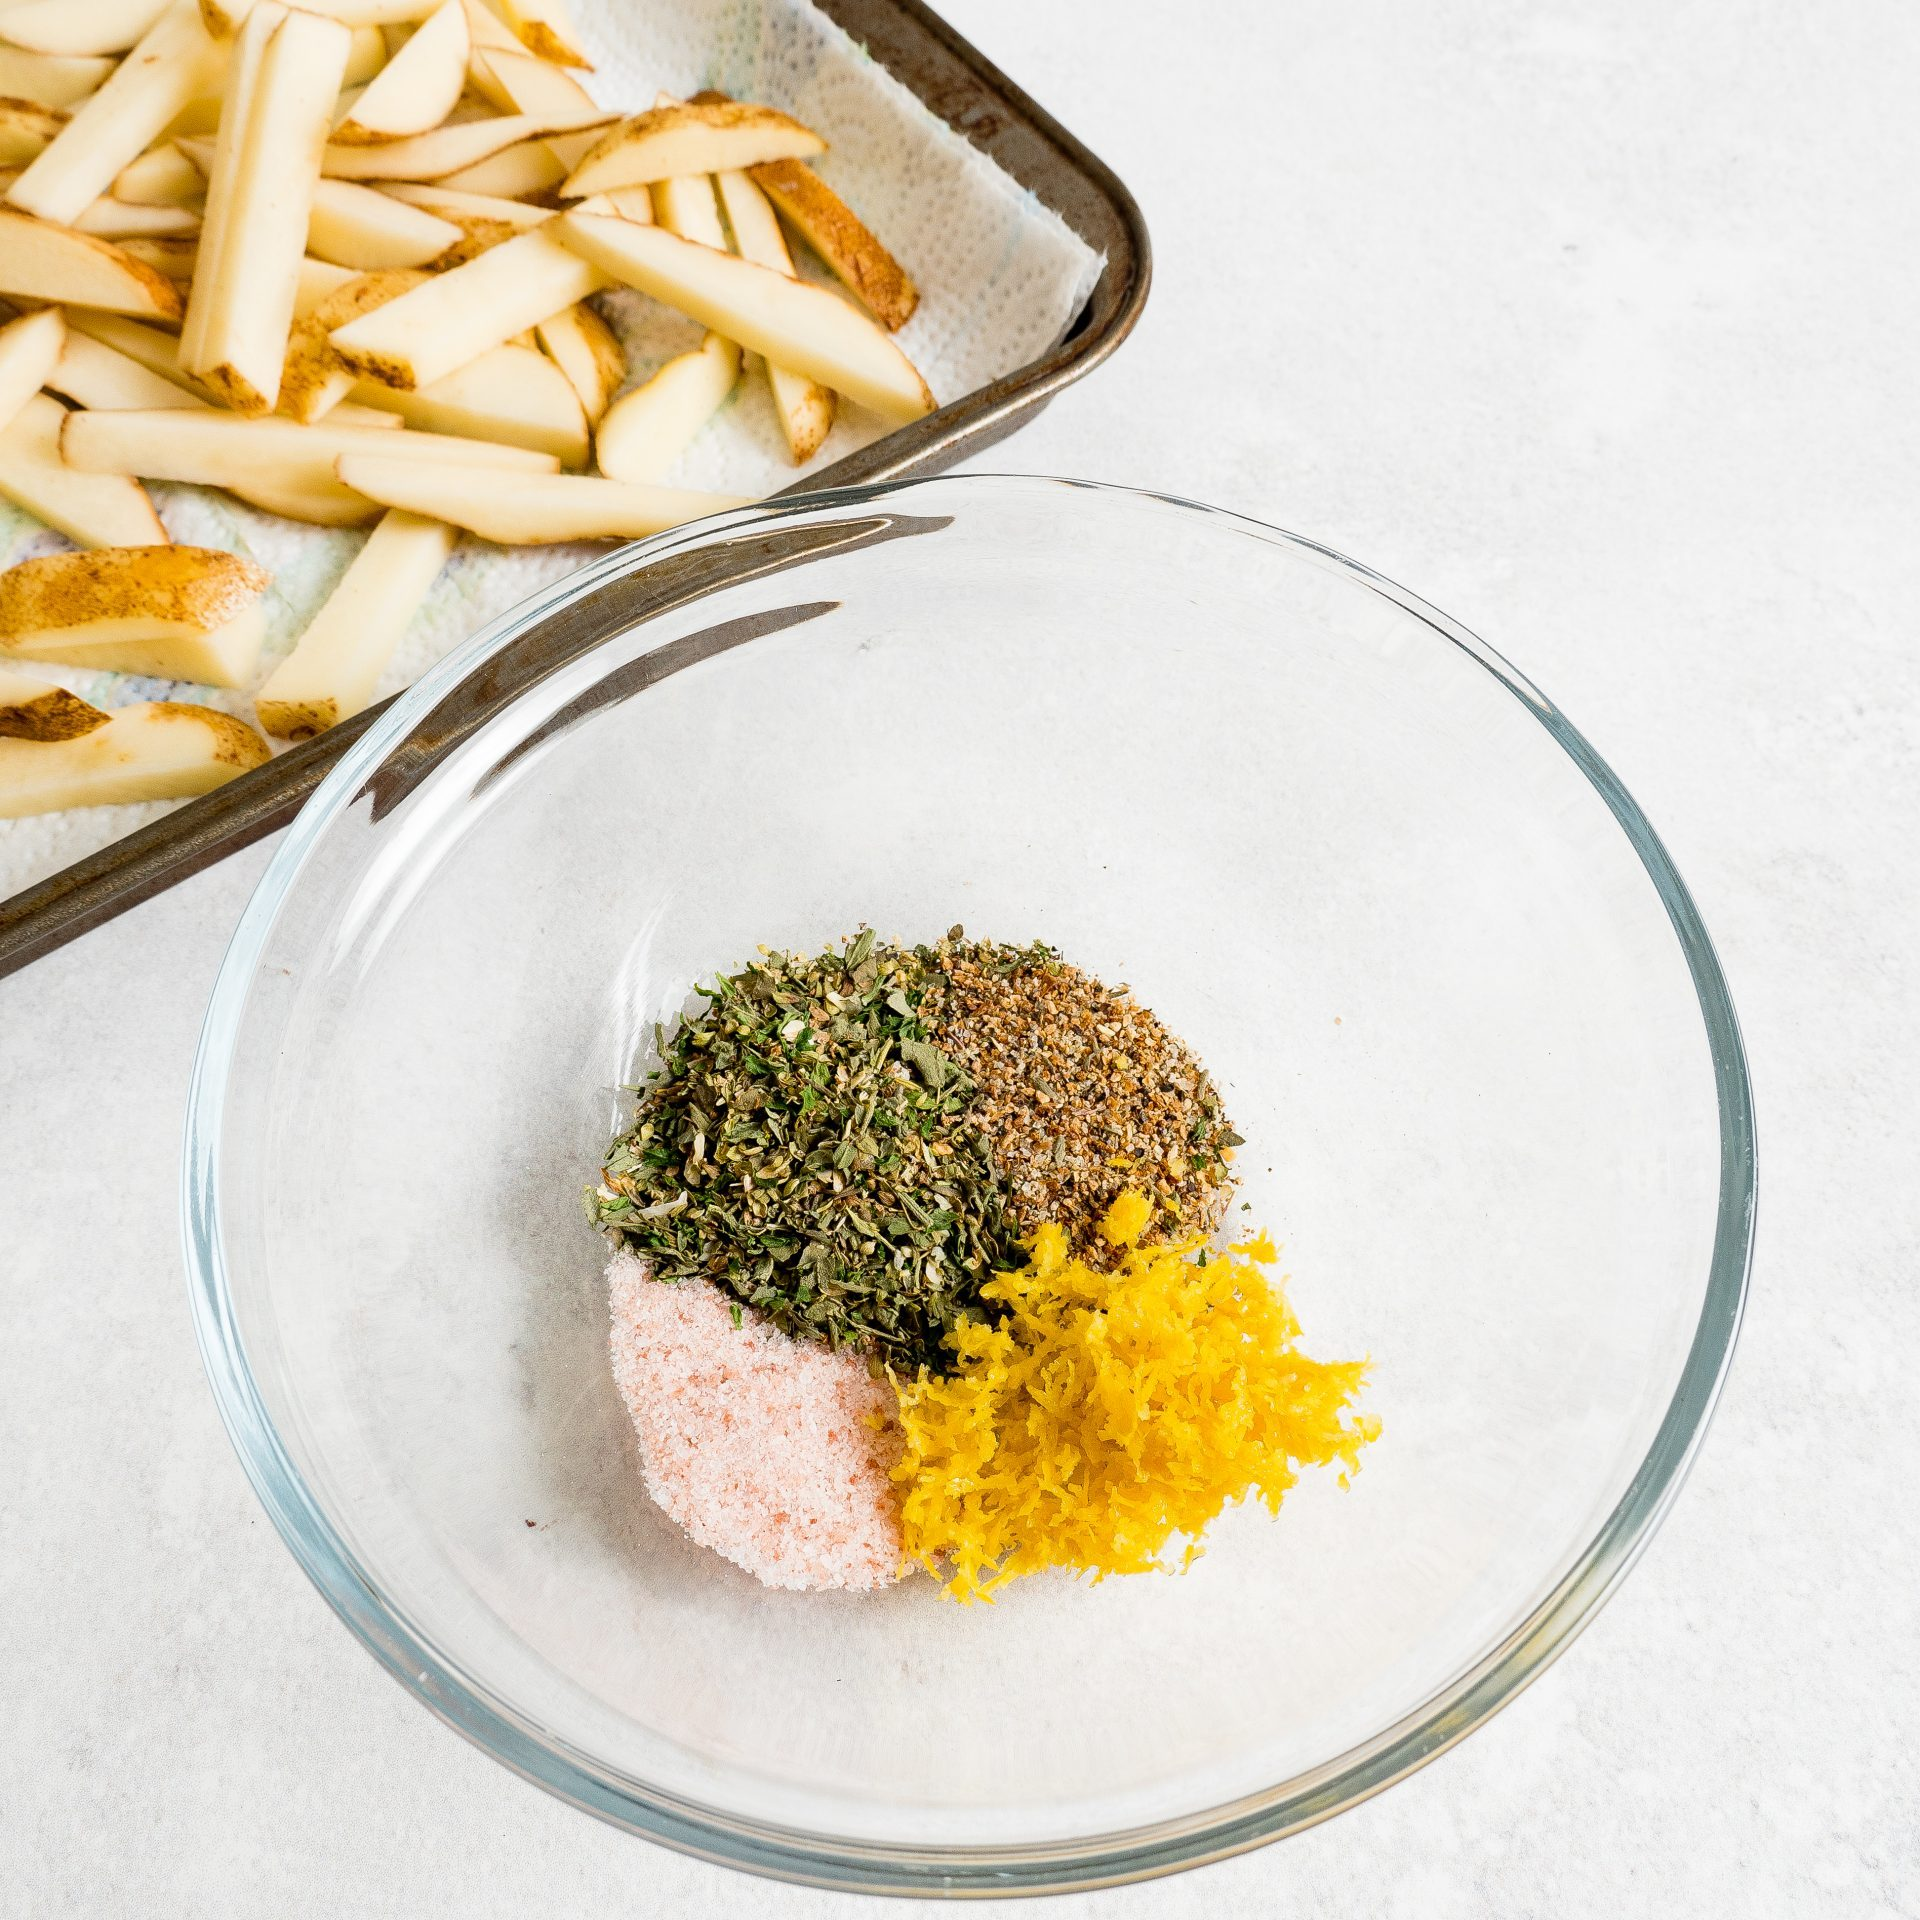 picture of seasoning in a bowl